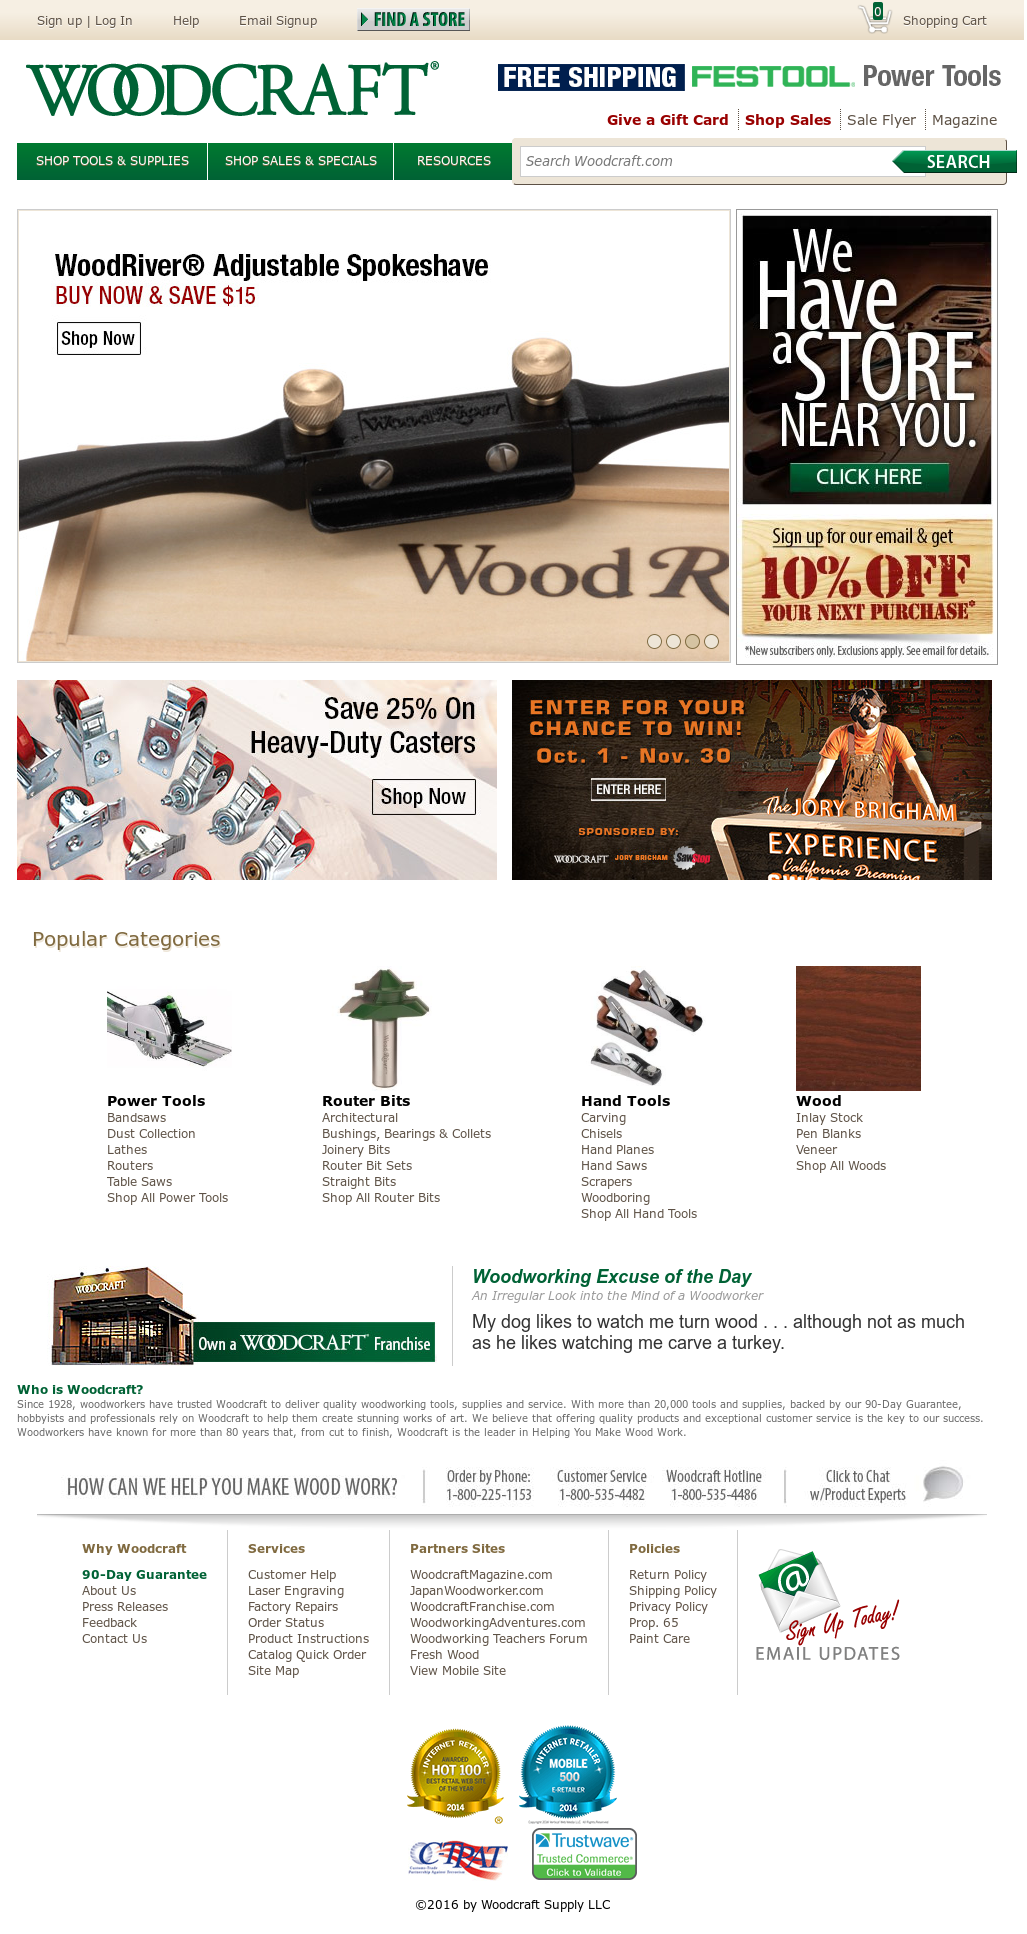 Woodcraft Competitors, Revenue and Employees - Owler Company